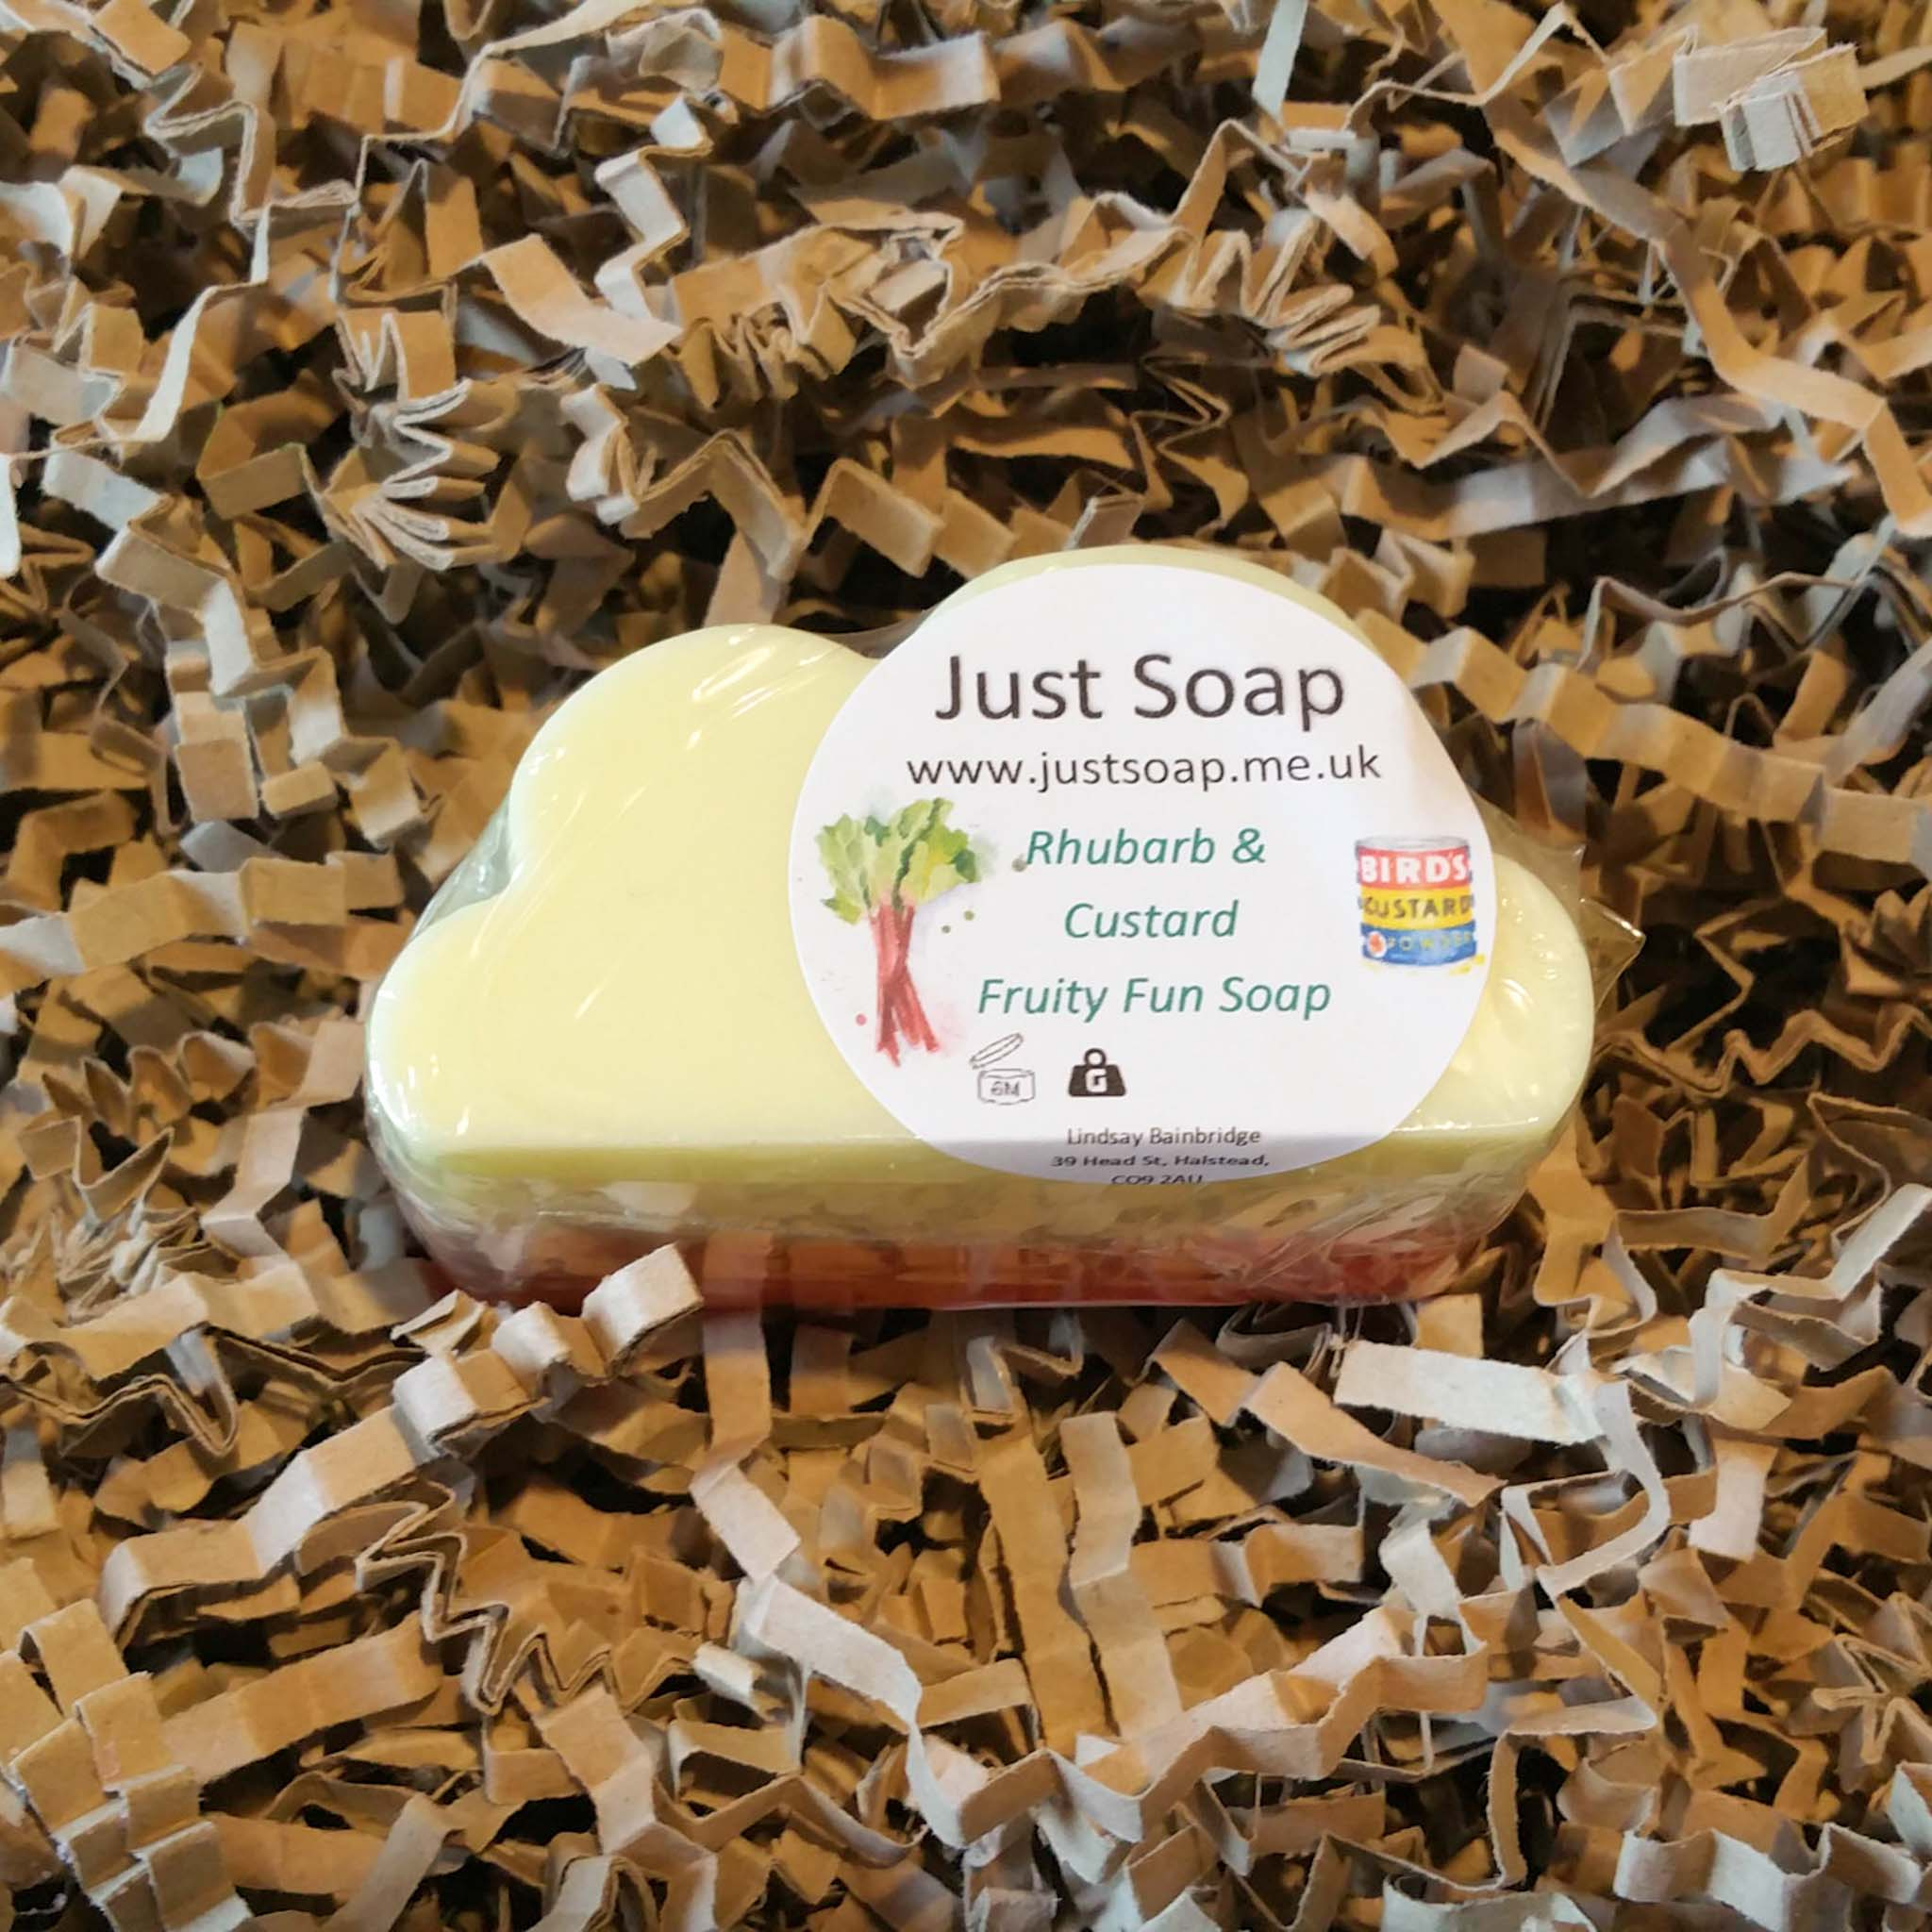 Rhubarb and Custard Fruity Fun Soap